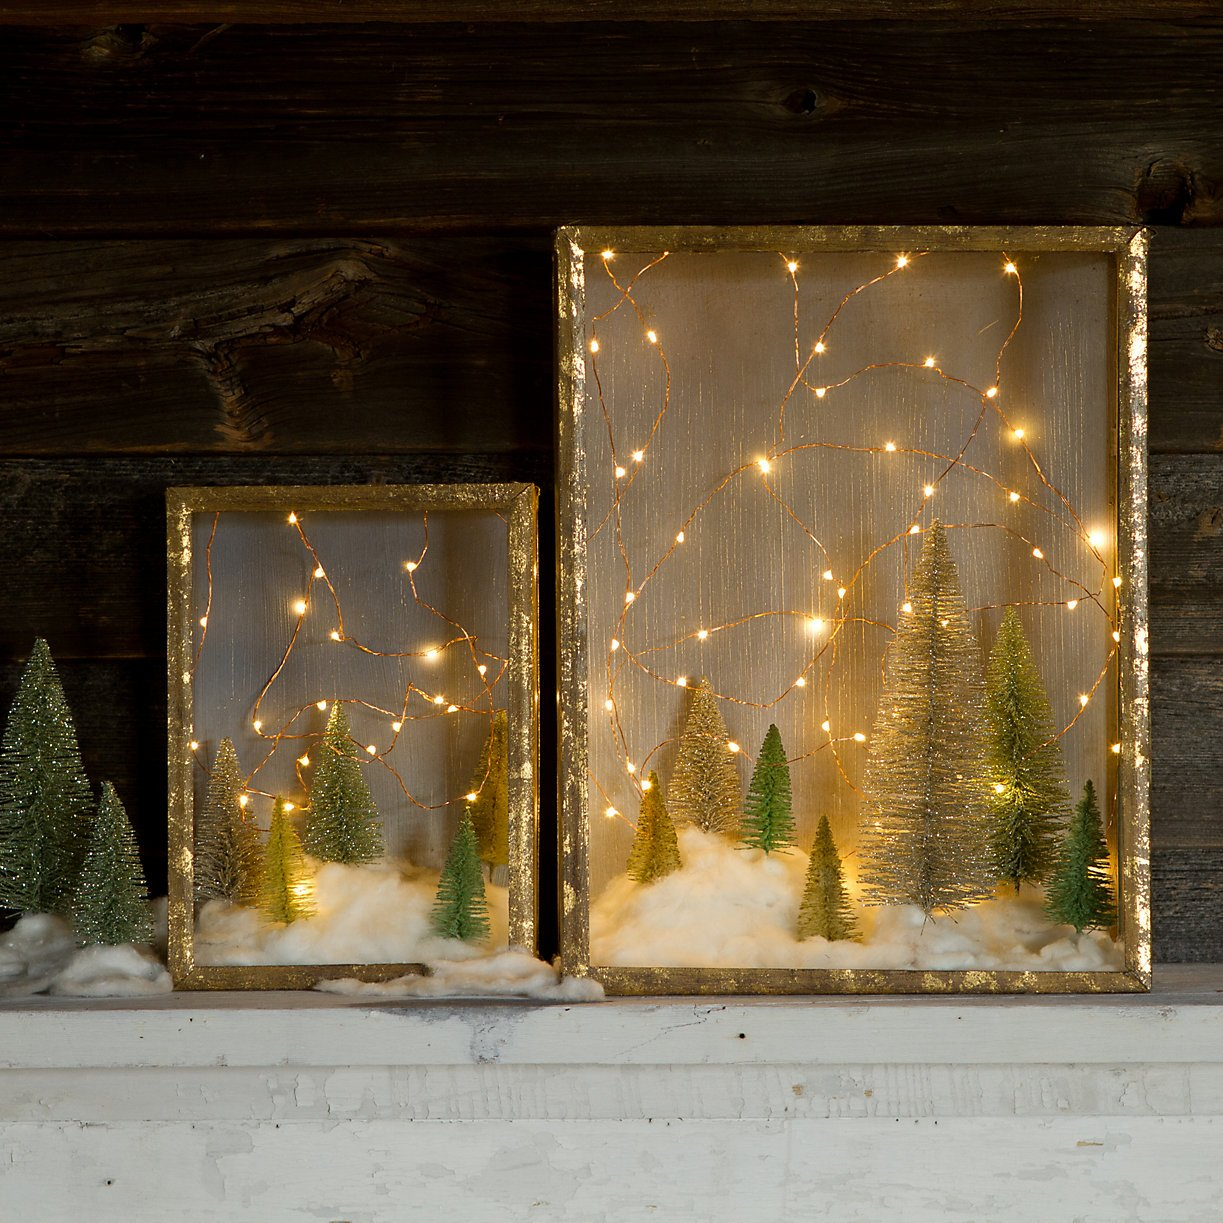 draw-attention-tabletop-holiday-decor-draping-lights.jpg